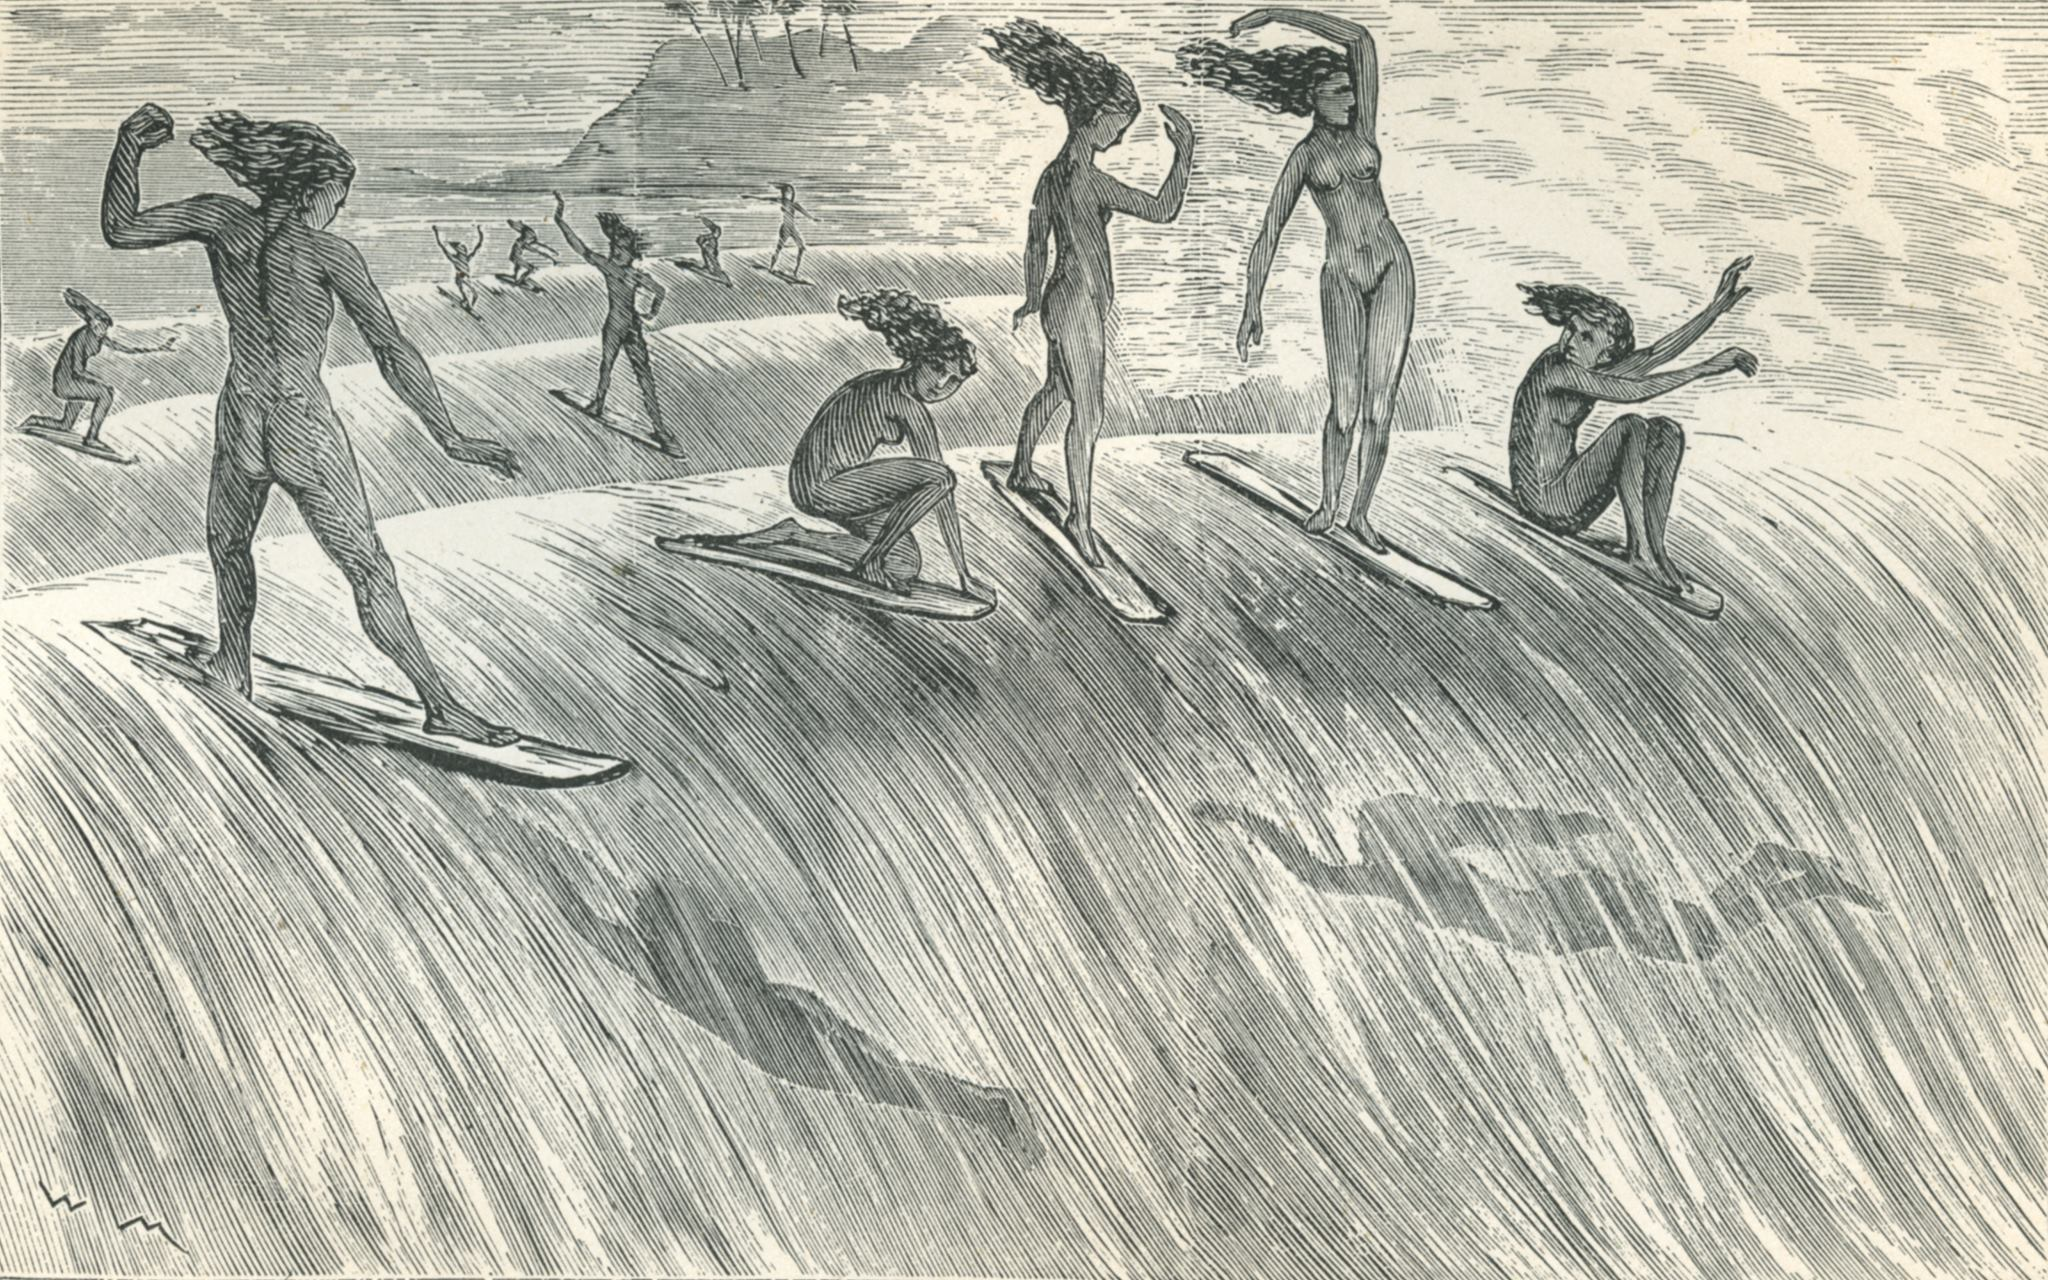 Surfing 250 Years Ago!